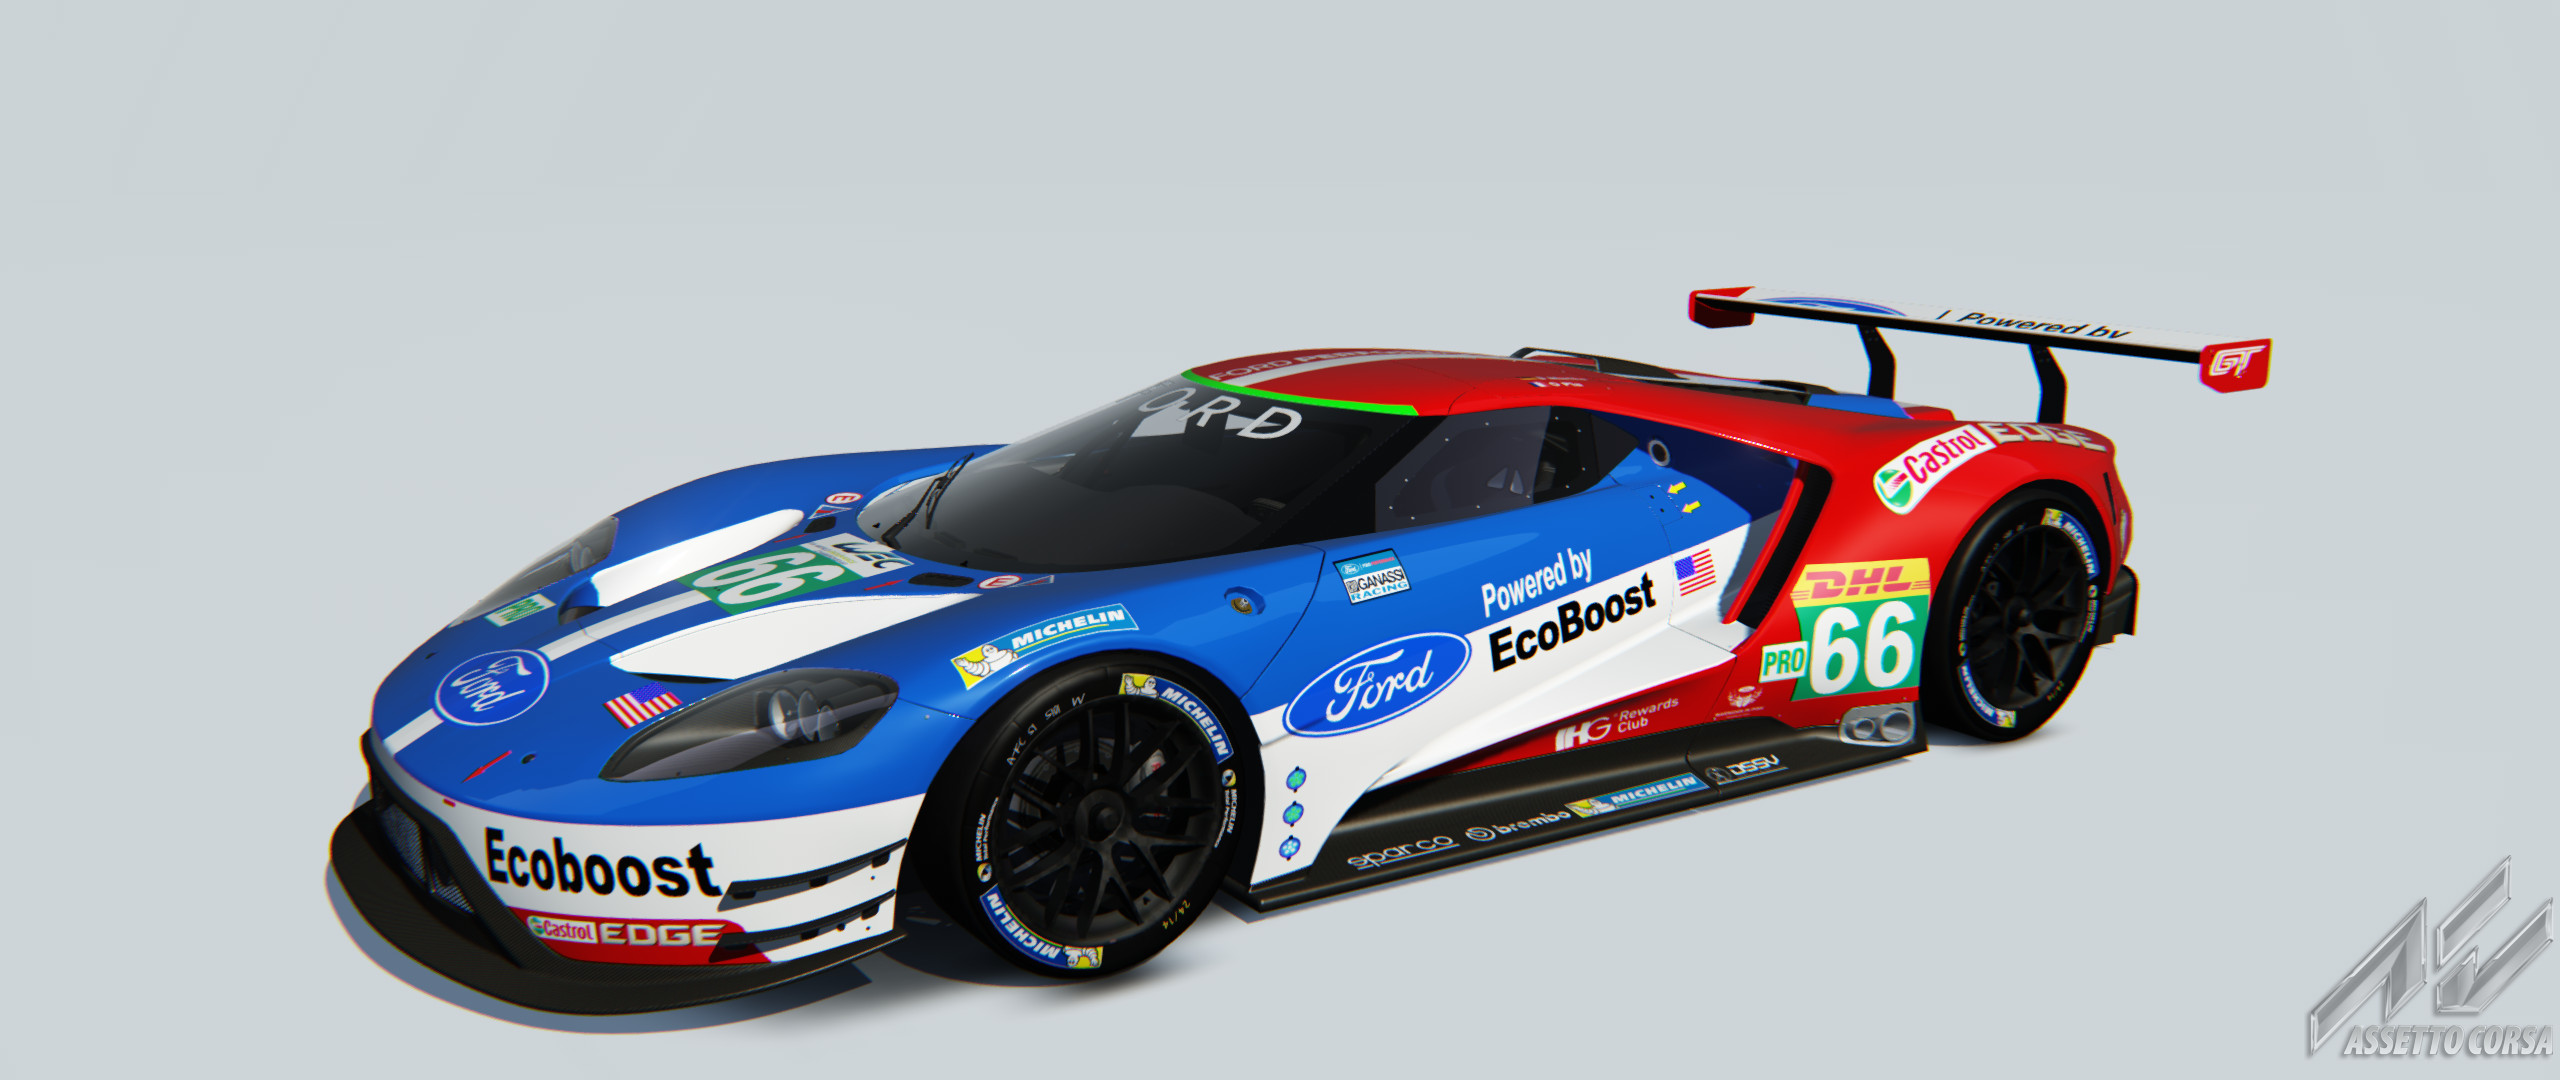 Showroom_ag_ford_gte_lms_21-9-2016-17-21-28.jpg